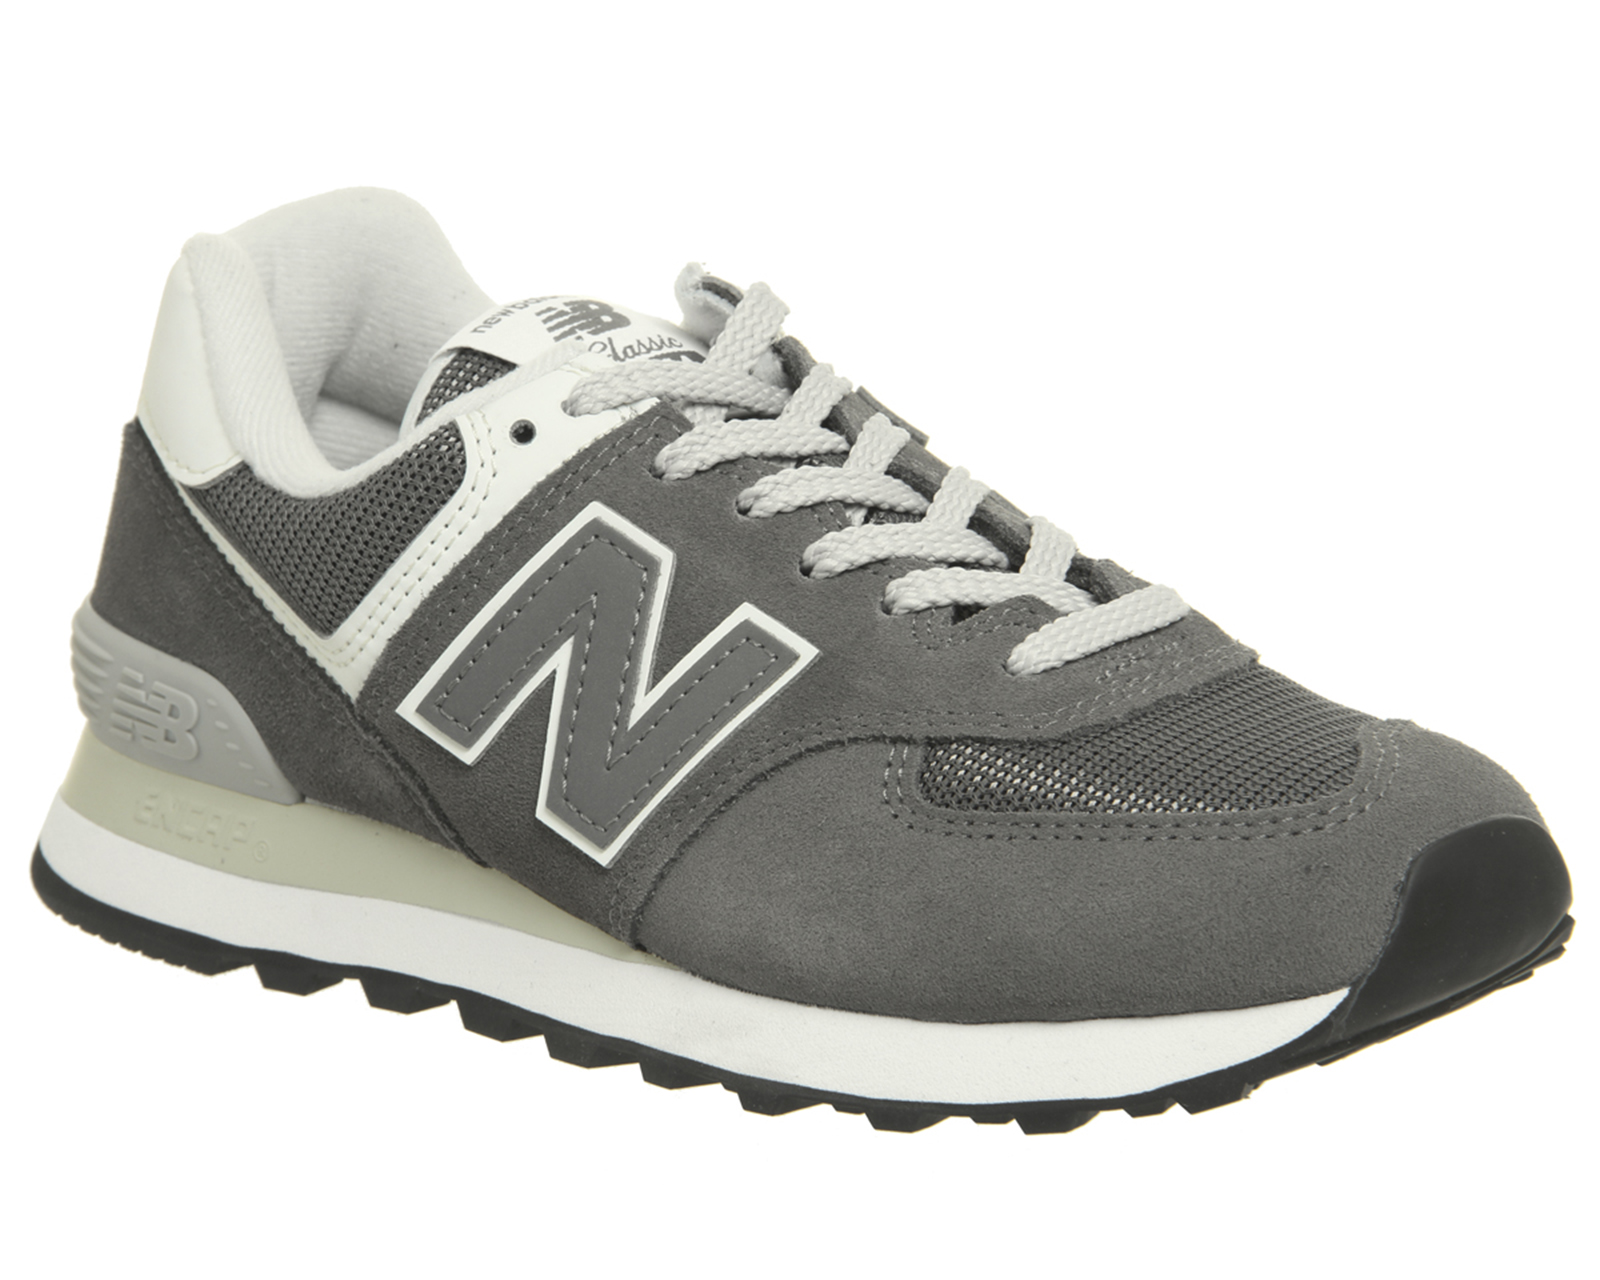 grand choix de a2f14 37eda Details about Womens New Balance 574 Trainers Castle Rock Trainers Shoes